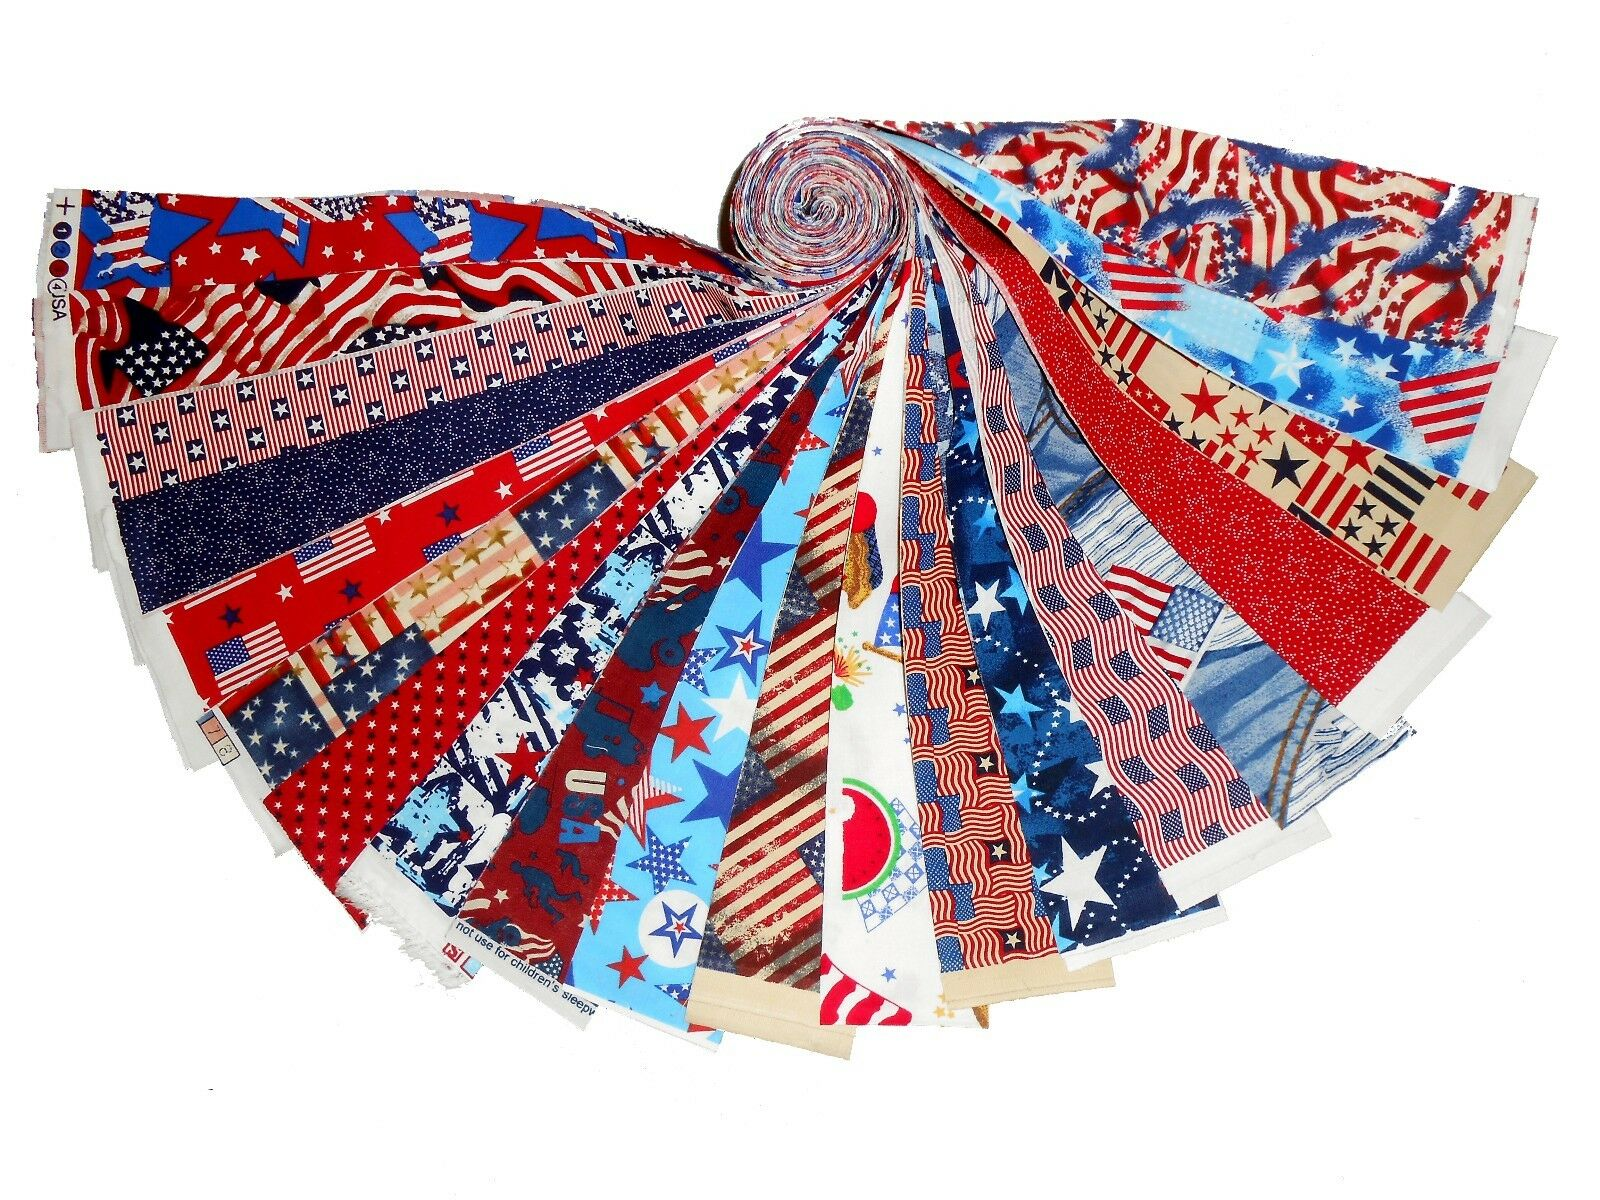 20 1.5  Quilting Fabric HONEY BUN Strips Patriotic MEDLEY Red ... : honey bun quilting strips - Adamdwight.com